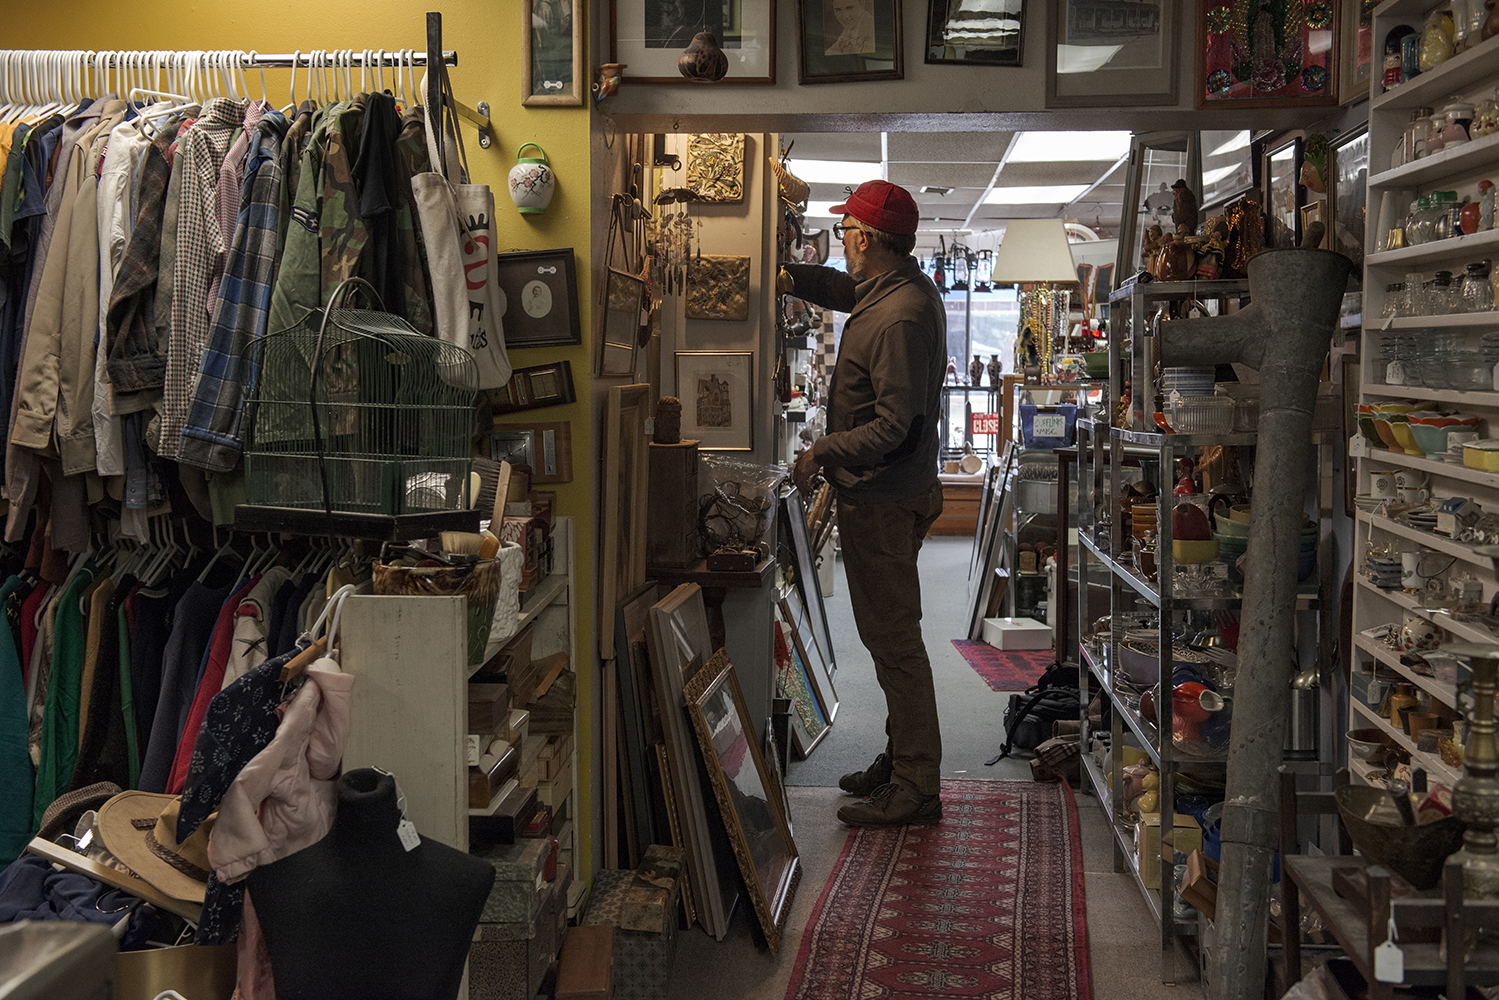 Artifacts owner Todd Thelen locates an item for a customer on Thursday, March 7, 2019. Thelen has owned Artifacts for 16 years. (Nick Rohlman/The Daily Iowan)